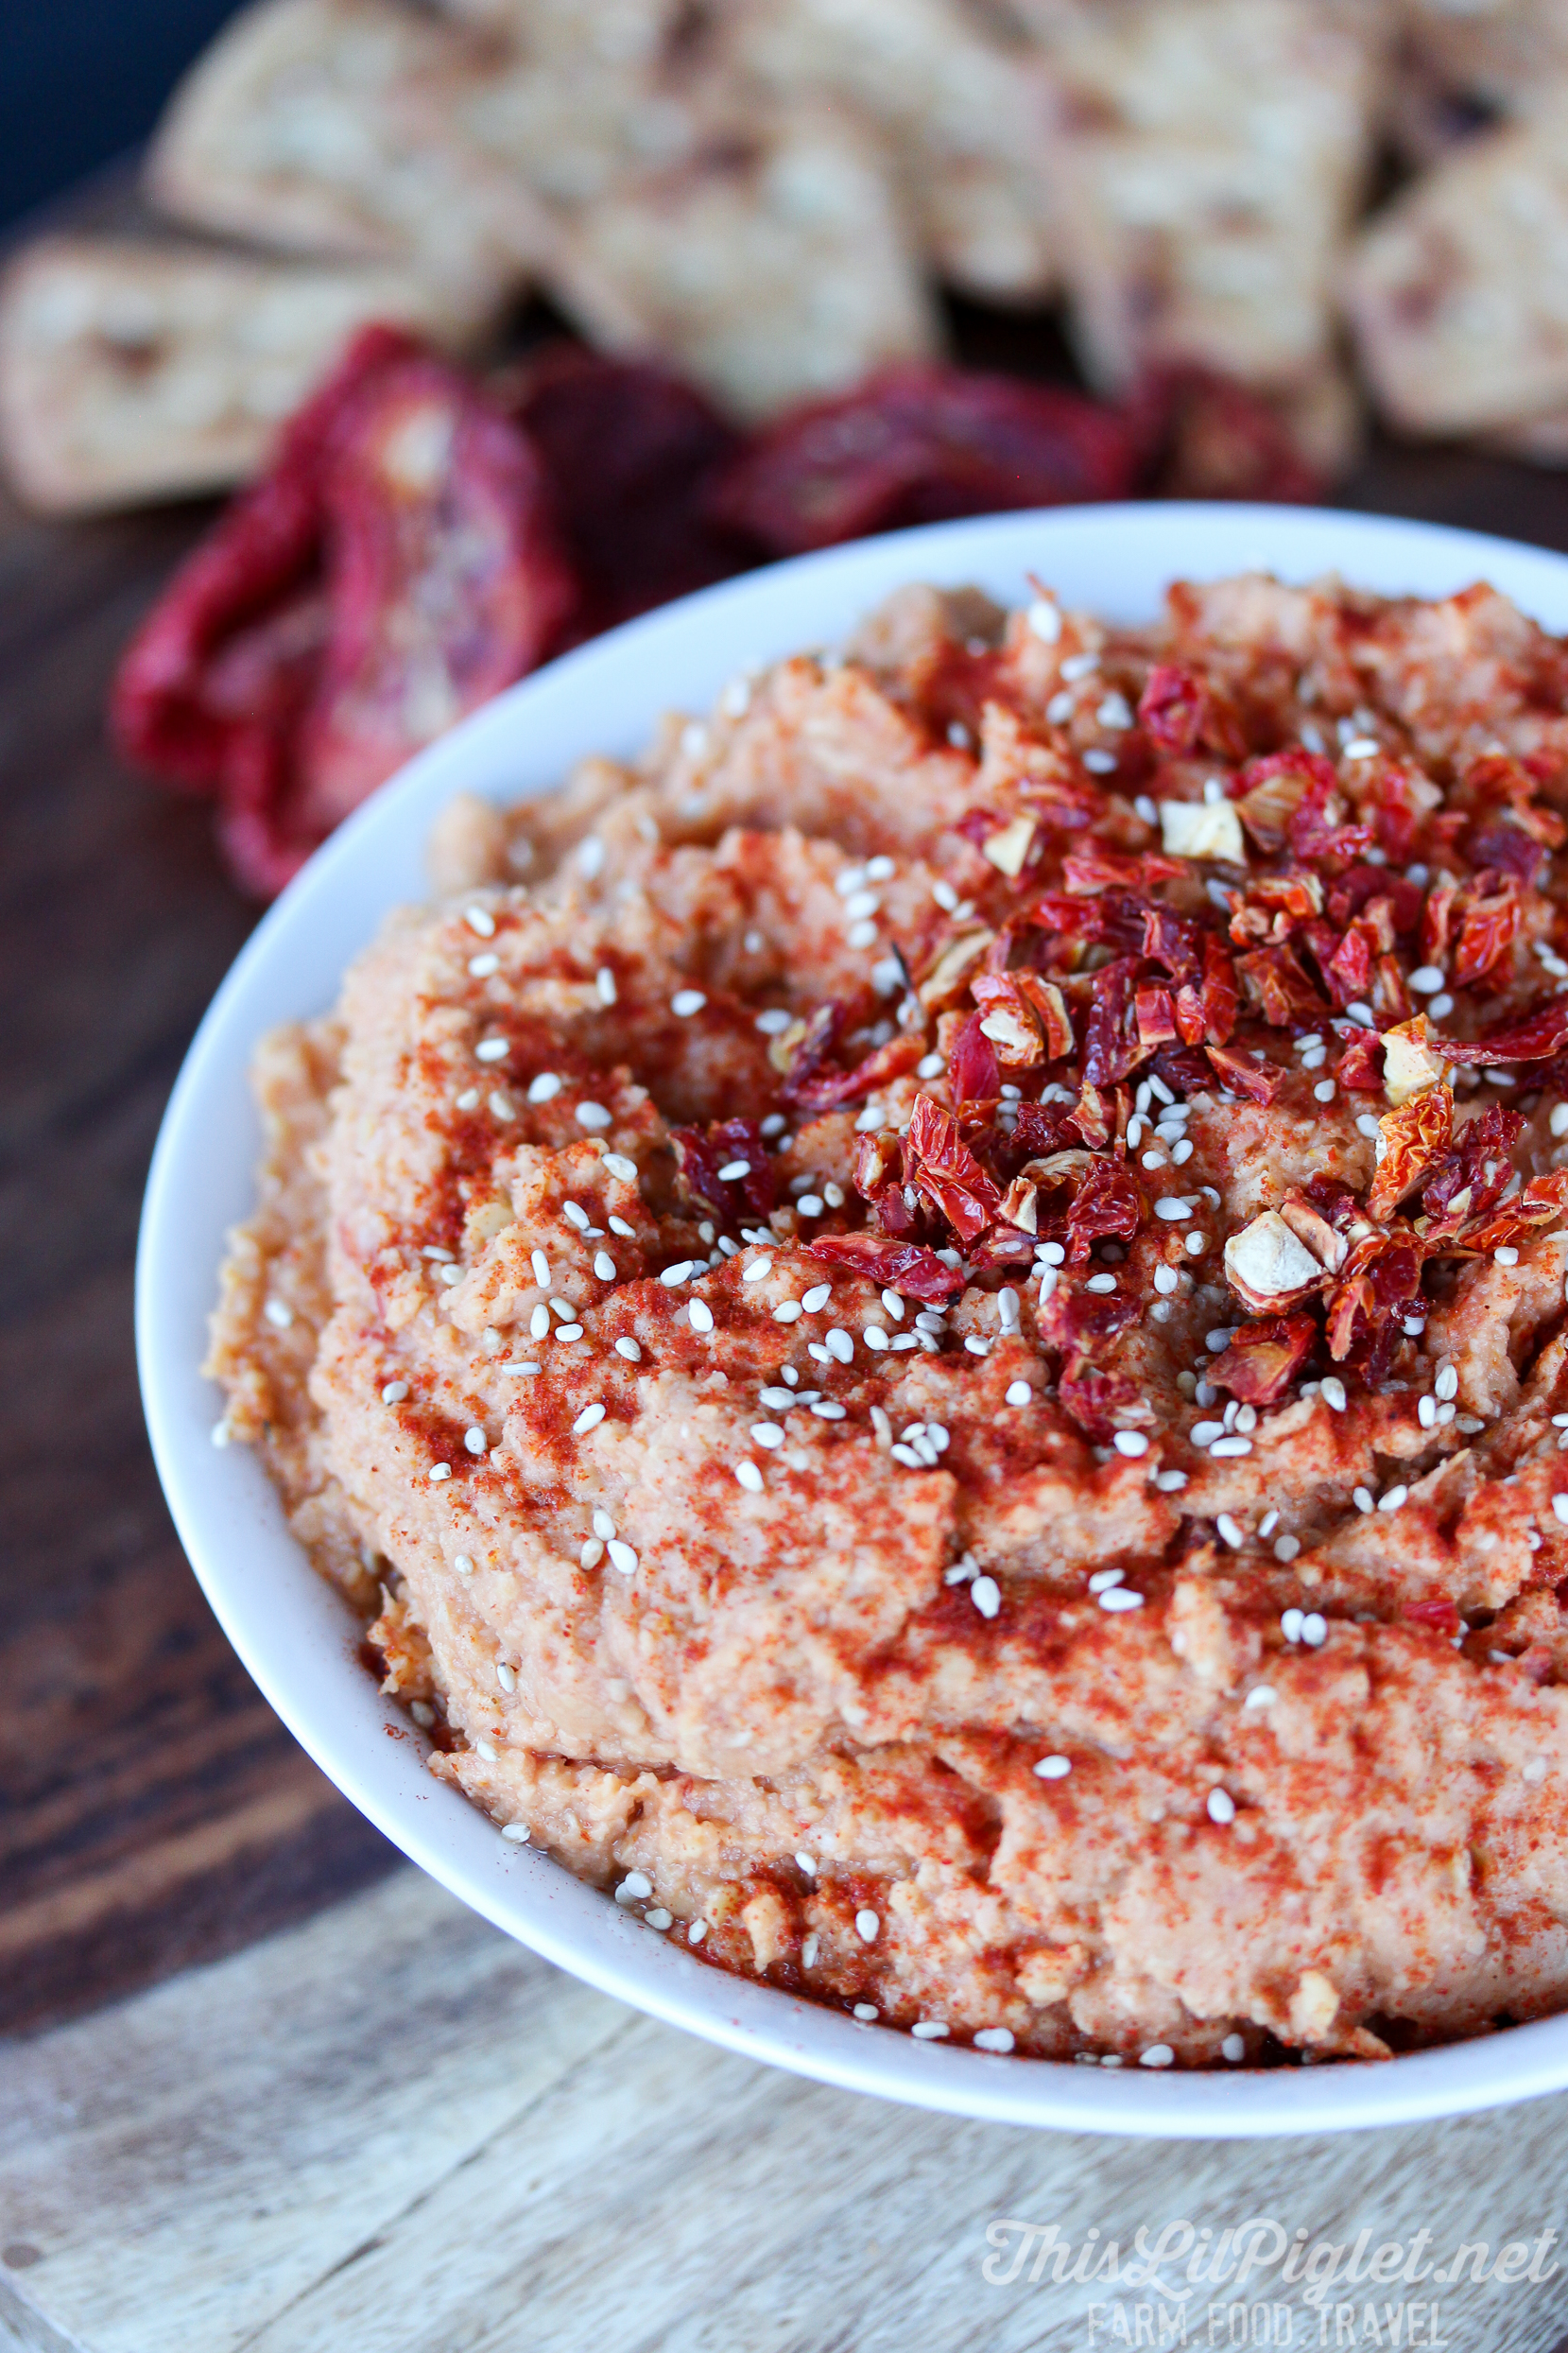 Sun-dried Tomato Hummus with Sesame Seeds - This Lil Piglet